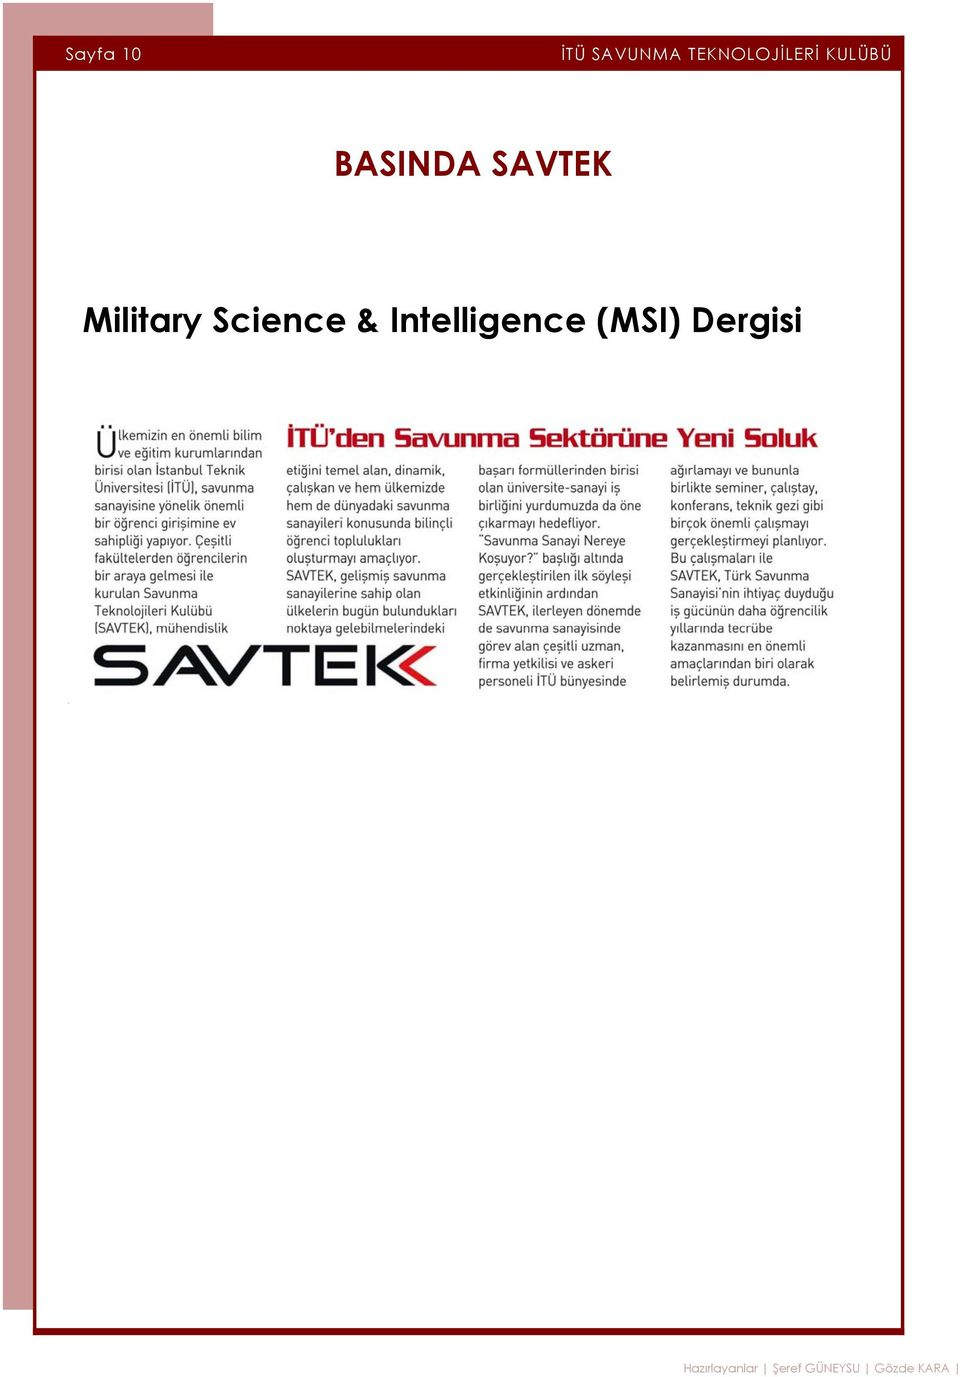 Intelligence (MSI) Dergisi